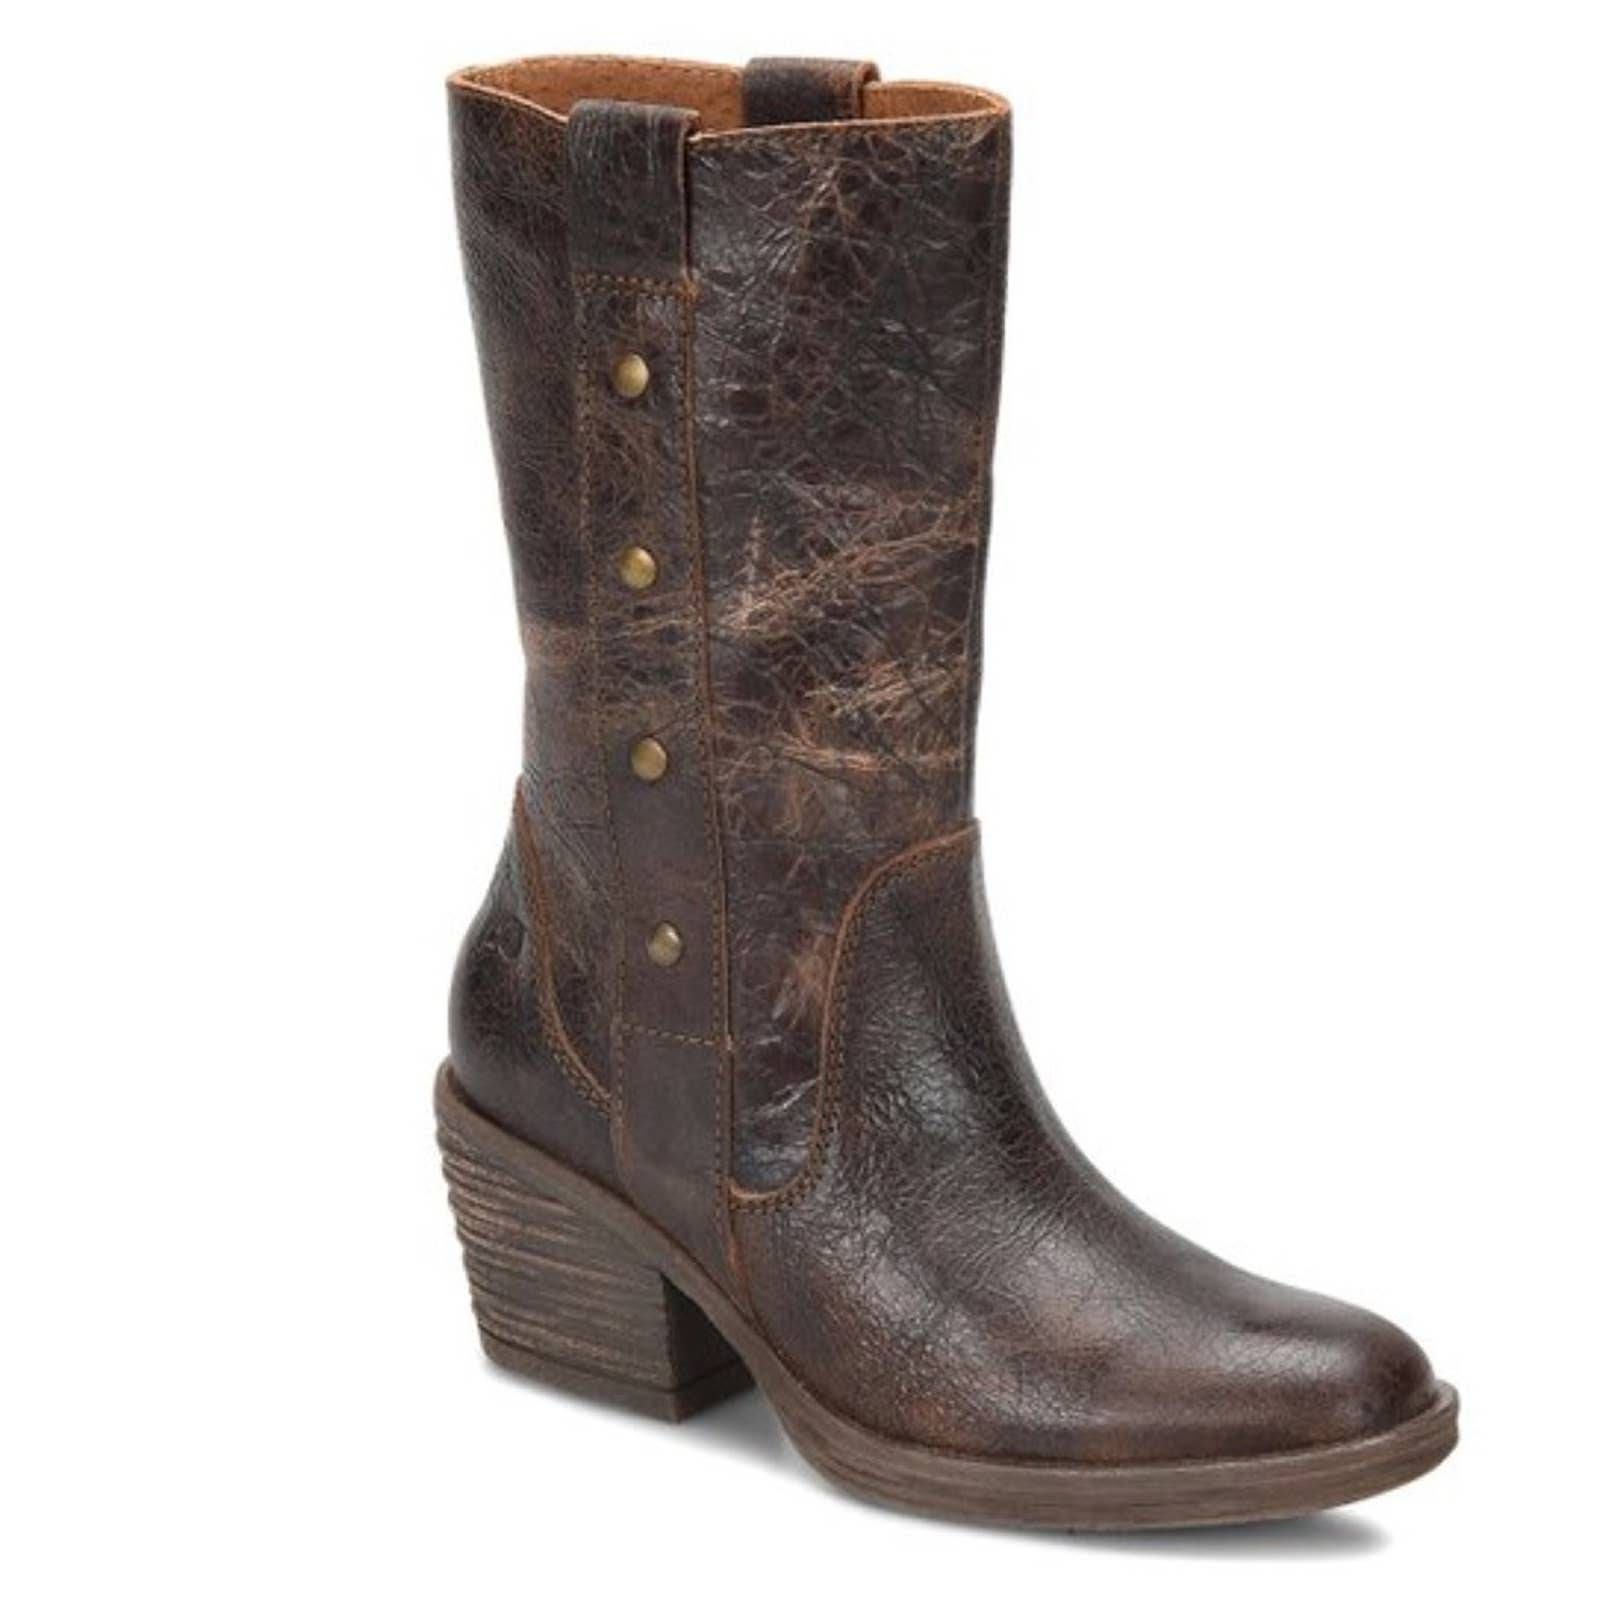 Born brown copper leather boots size 8